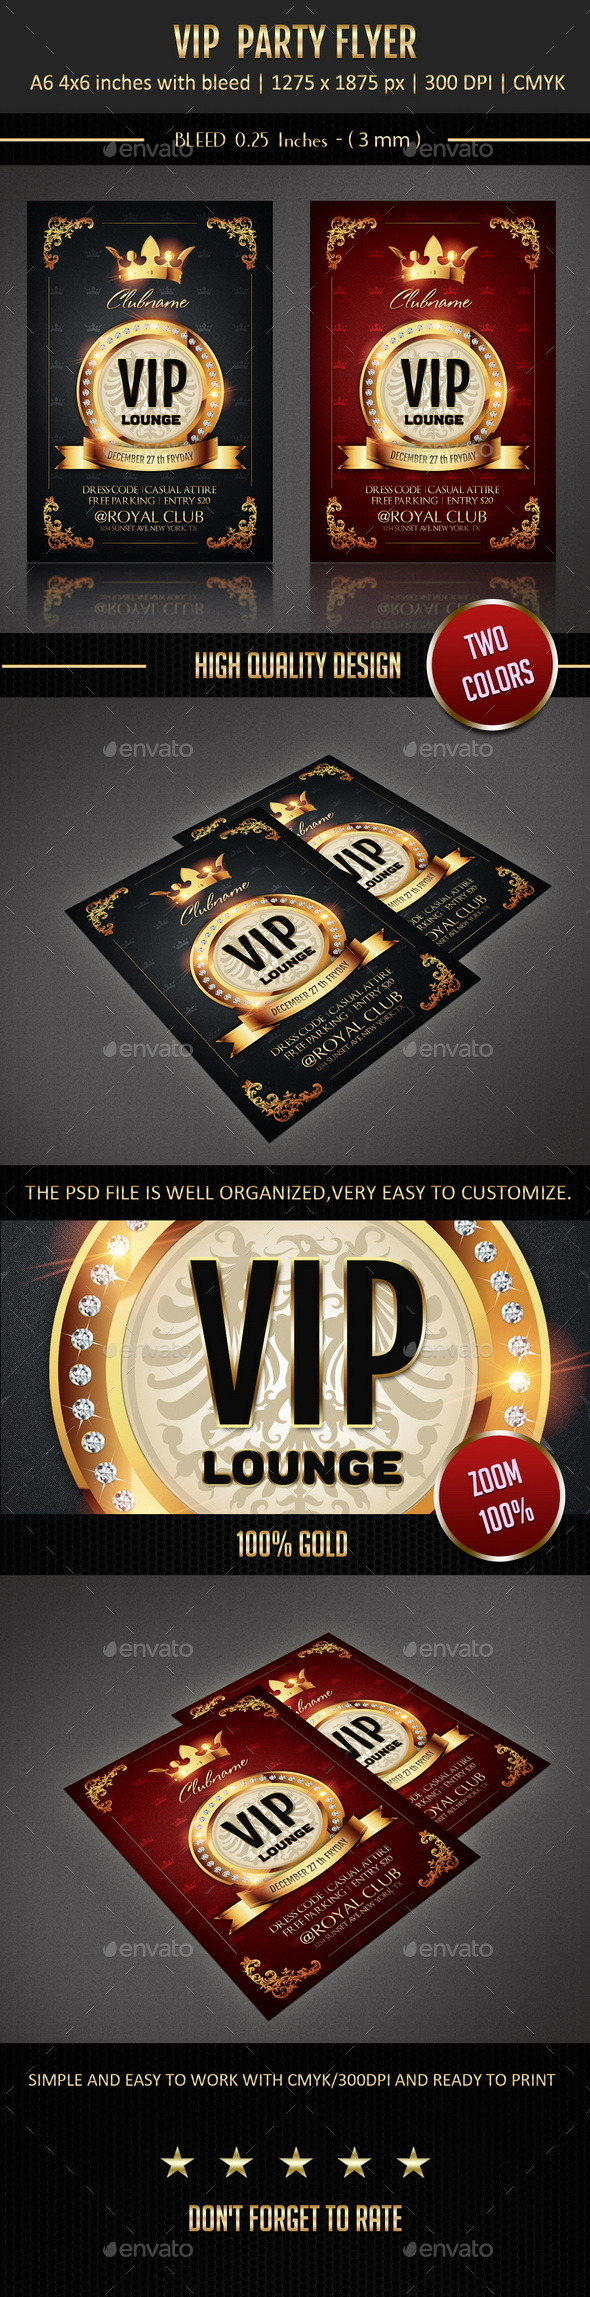 Vip Party Flyer - Flyers Print Templates